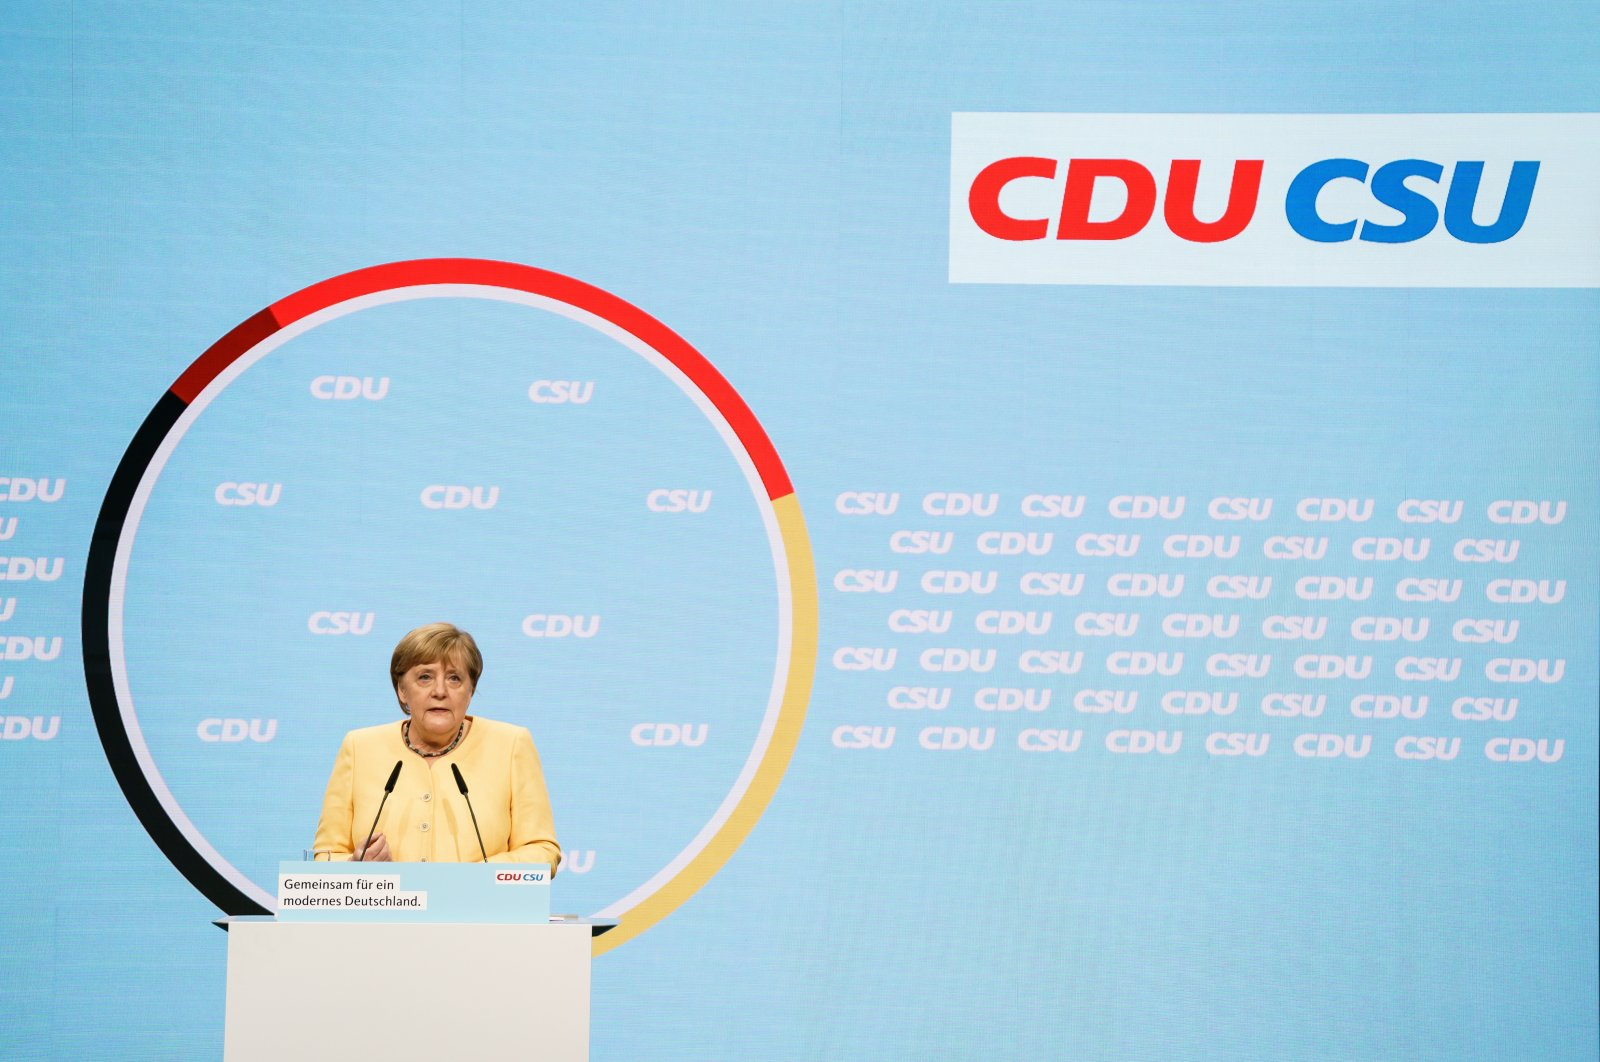 German Chancellor Angela Merkel delivers a speech during an election rally of the Christian Democratic Union (CDU) and Christian Social Union (CSU) at the Tempodrom, Berlin, Germany, Aug. 21, 2021. (EPA Photo)